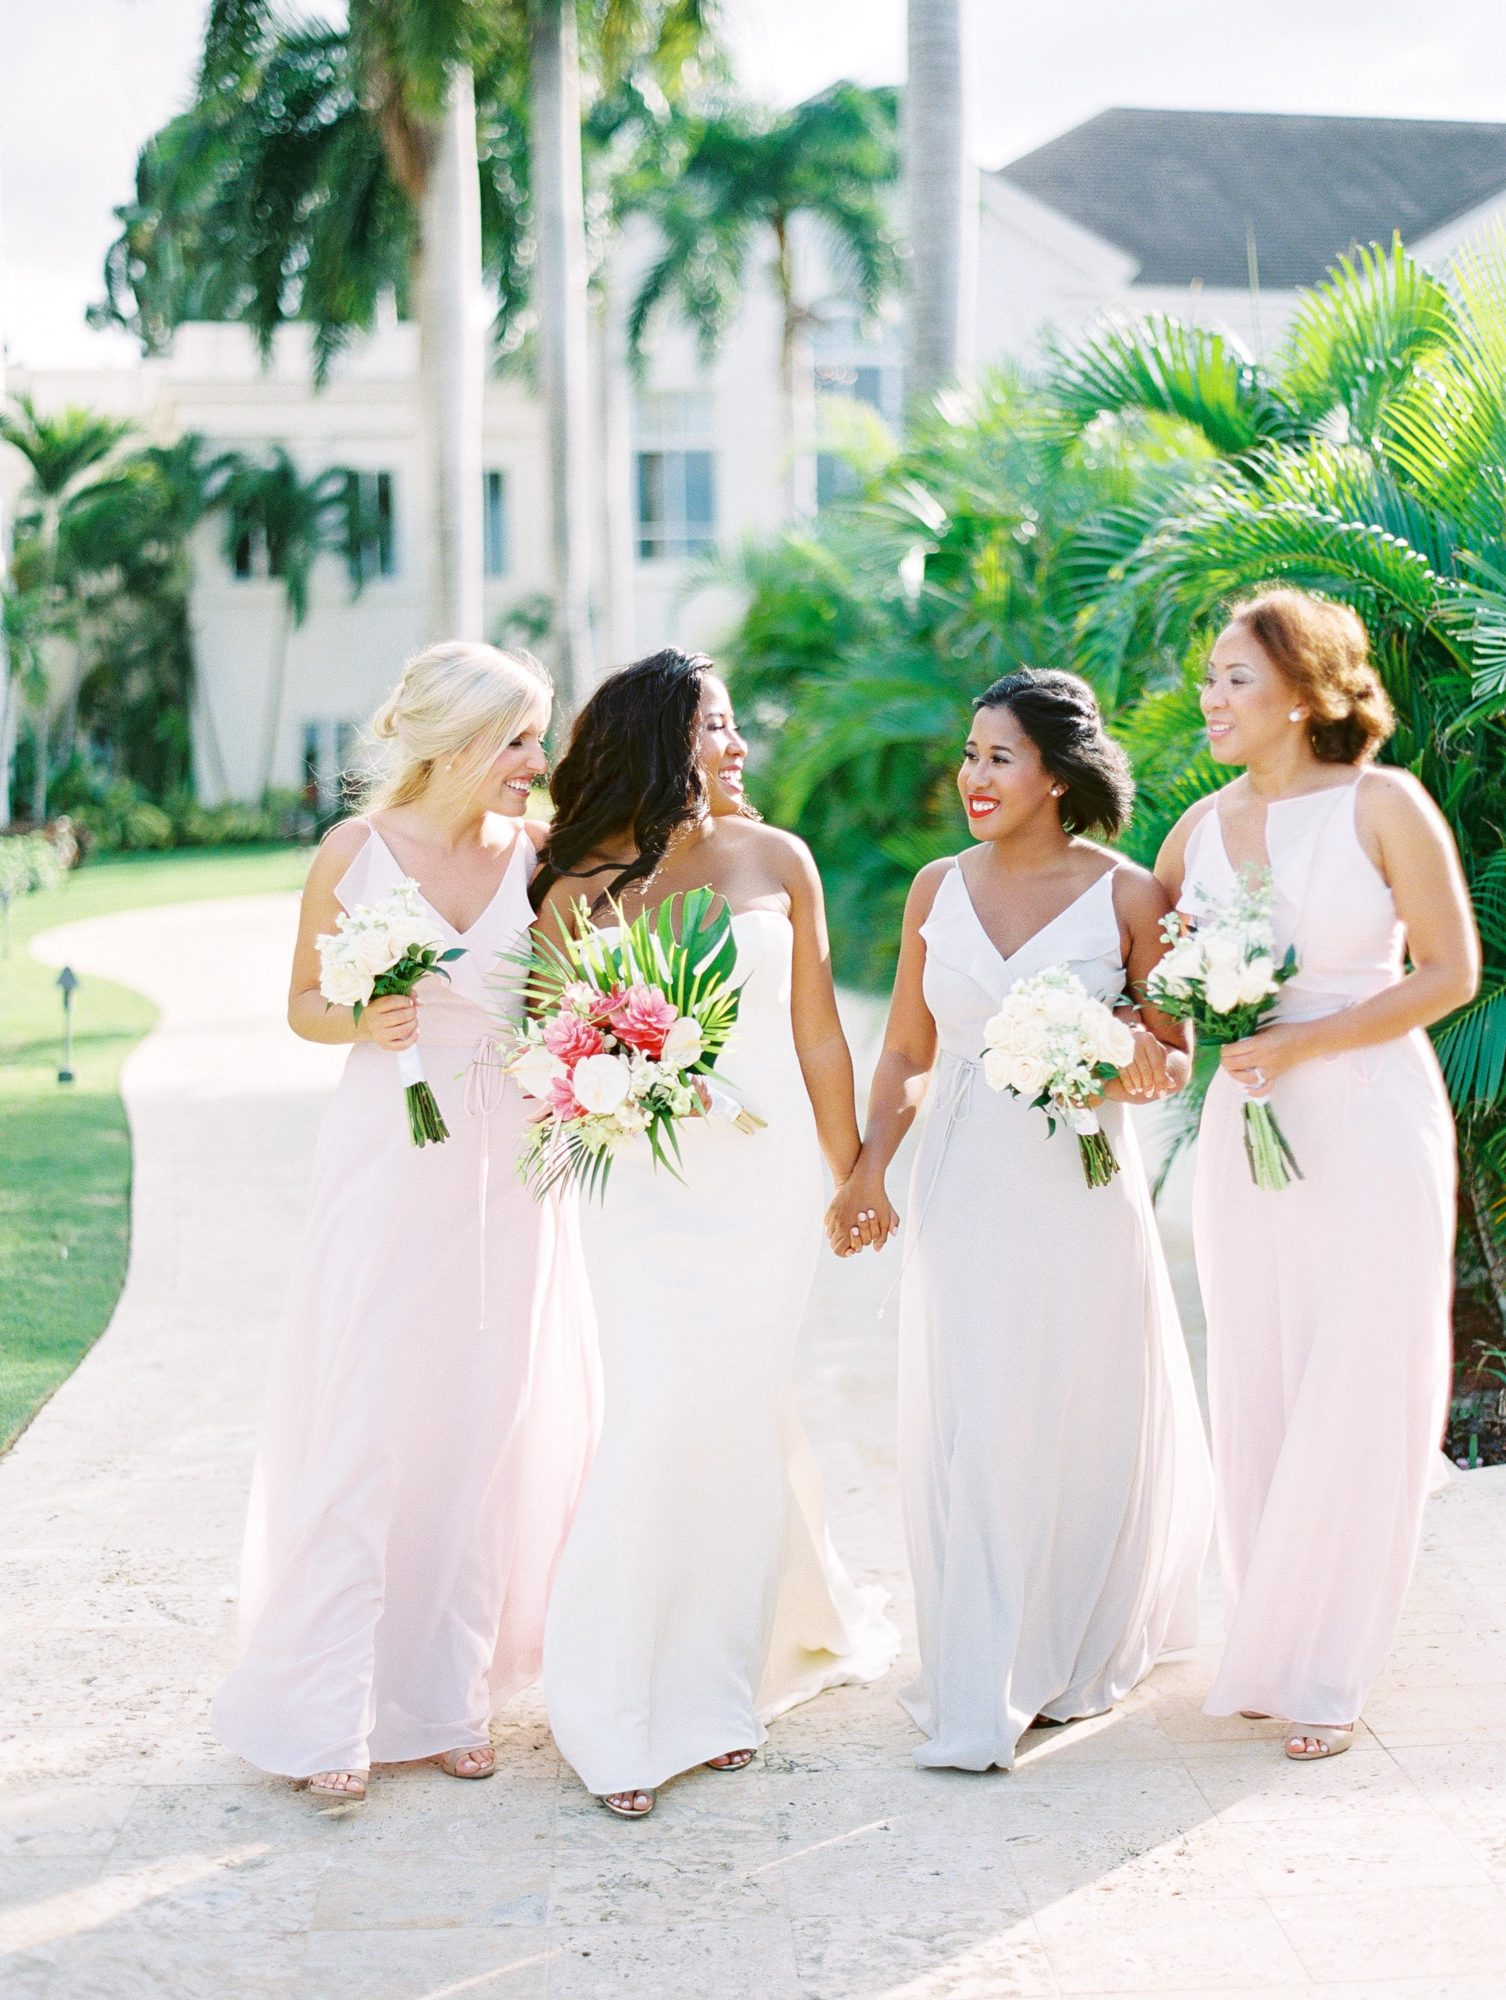 bride and bridesmaids walking